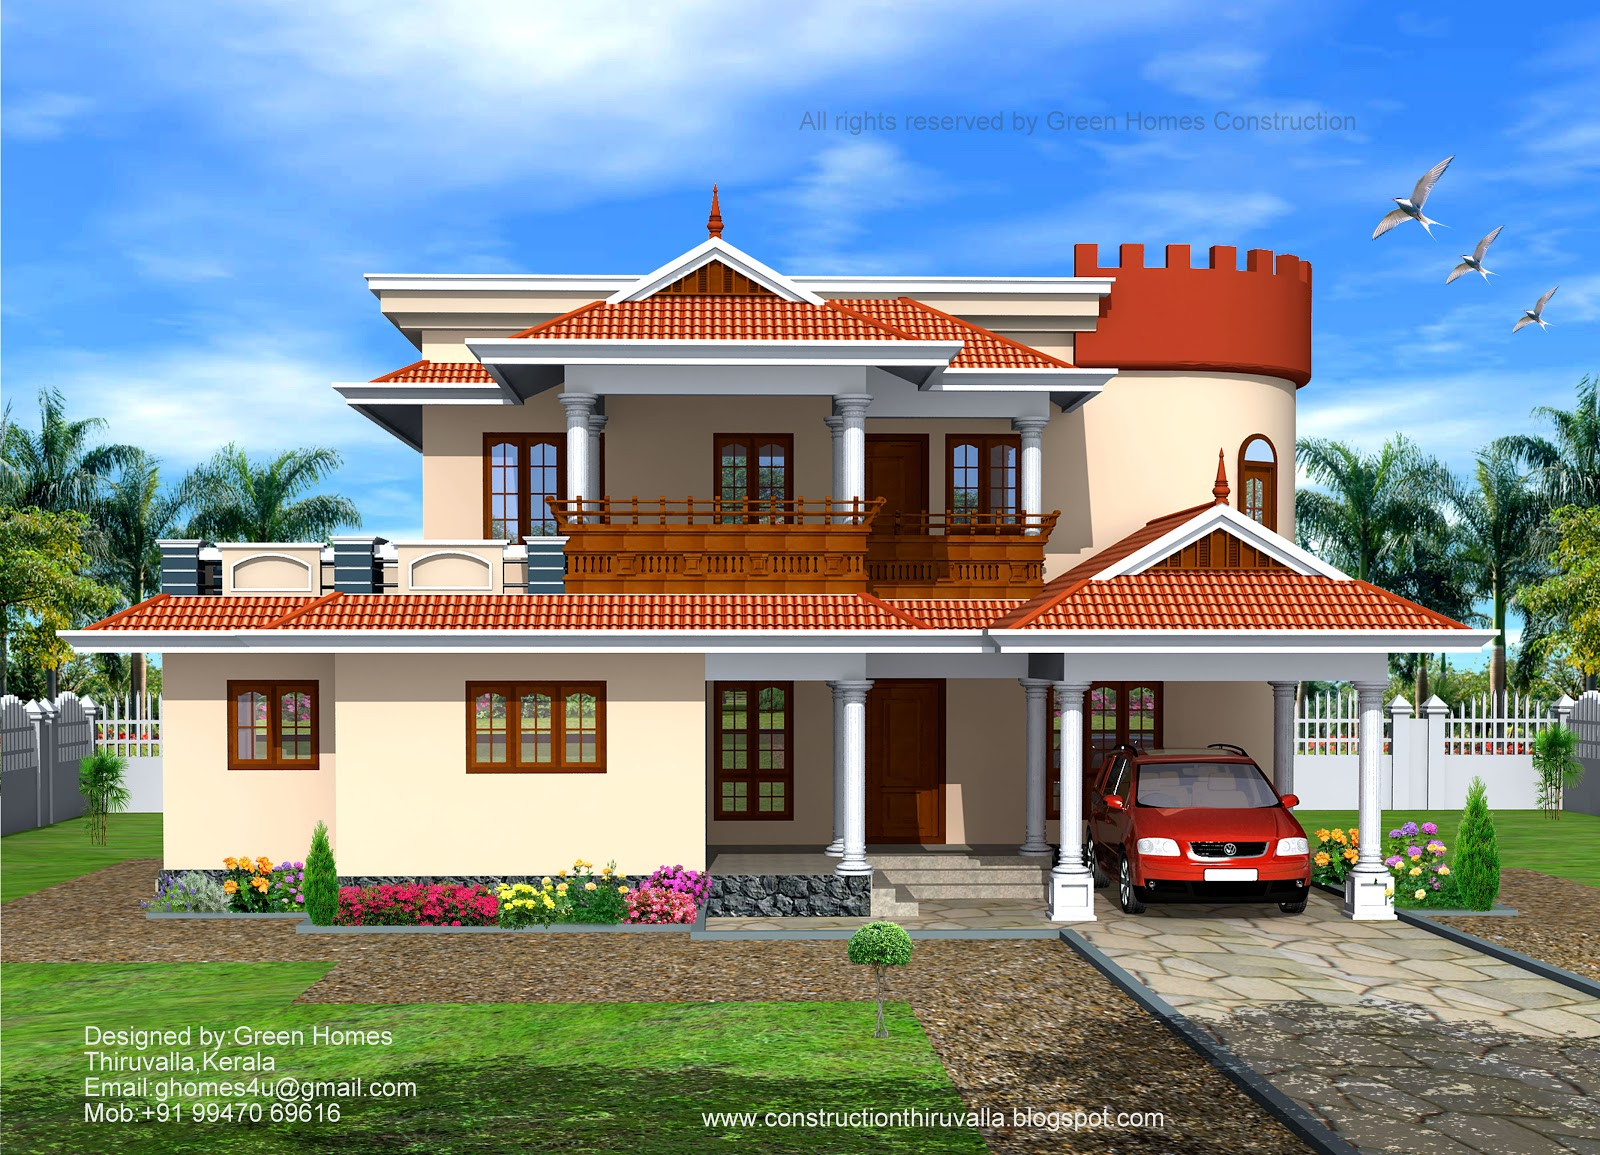 Green homes october 2012 Free indian home plans and designs